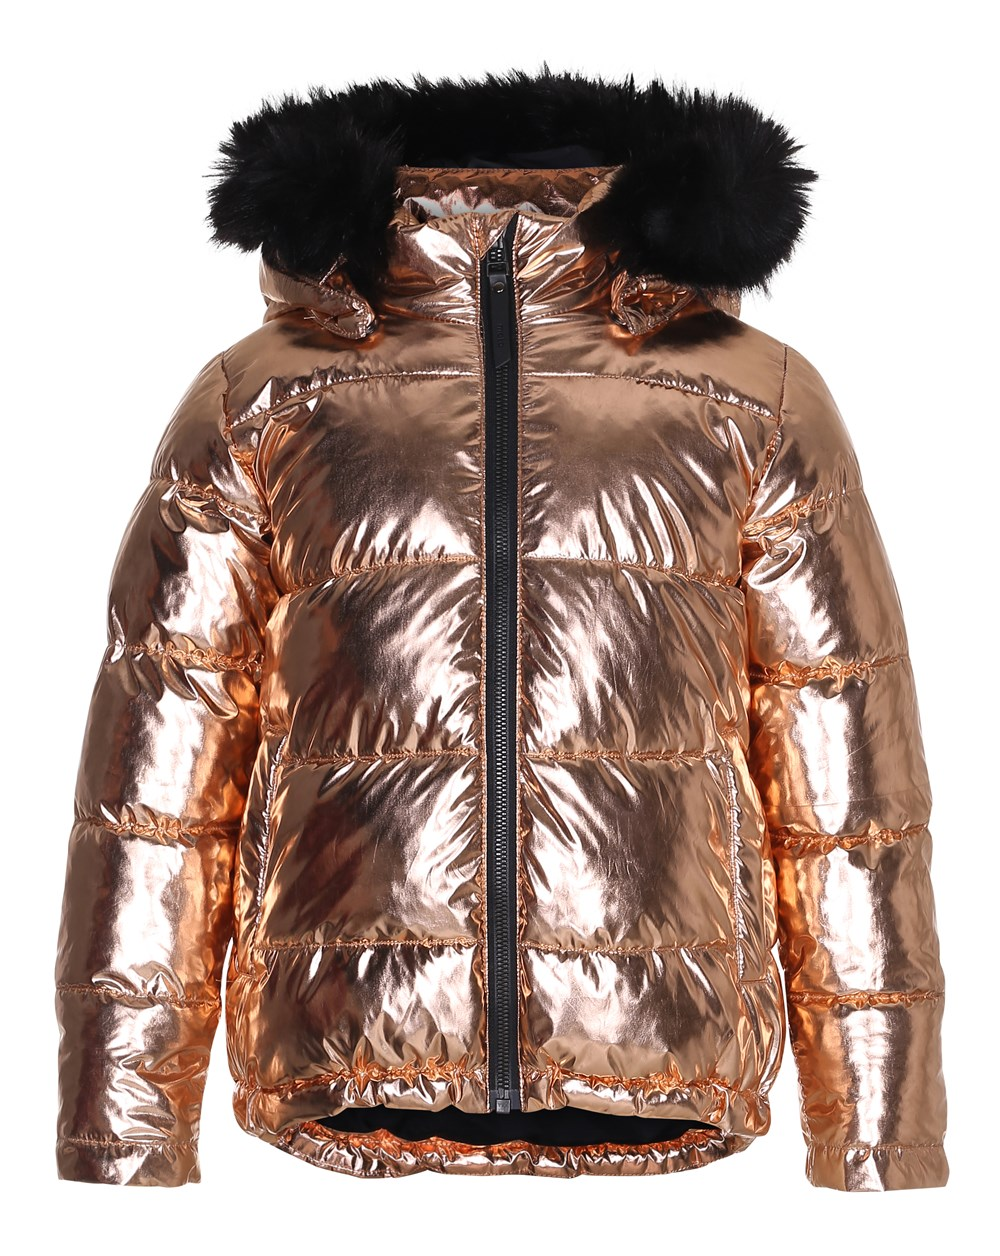 Hedia - Copper - Copper coloured jacket with fur trim